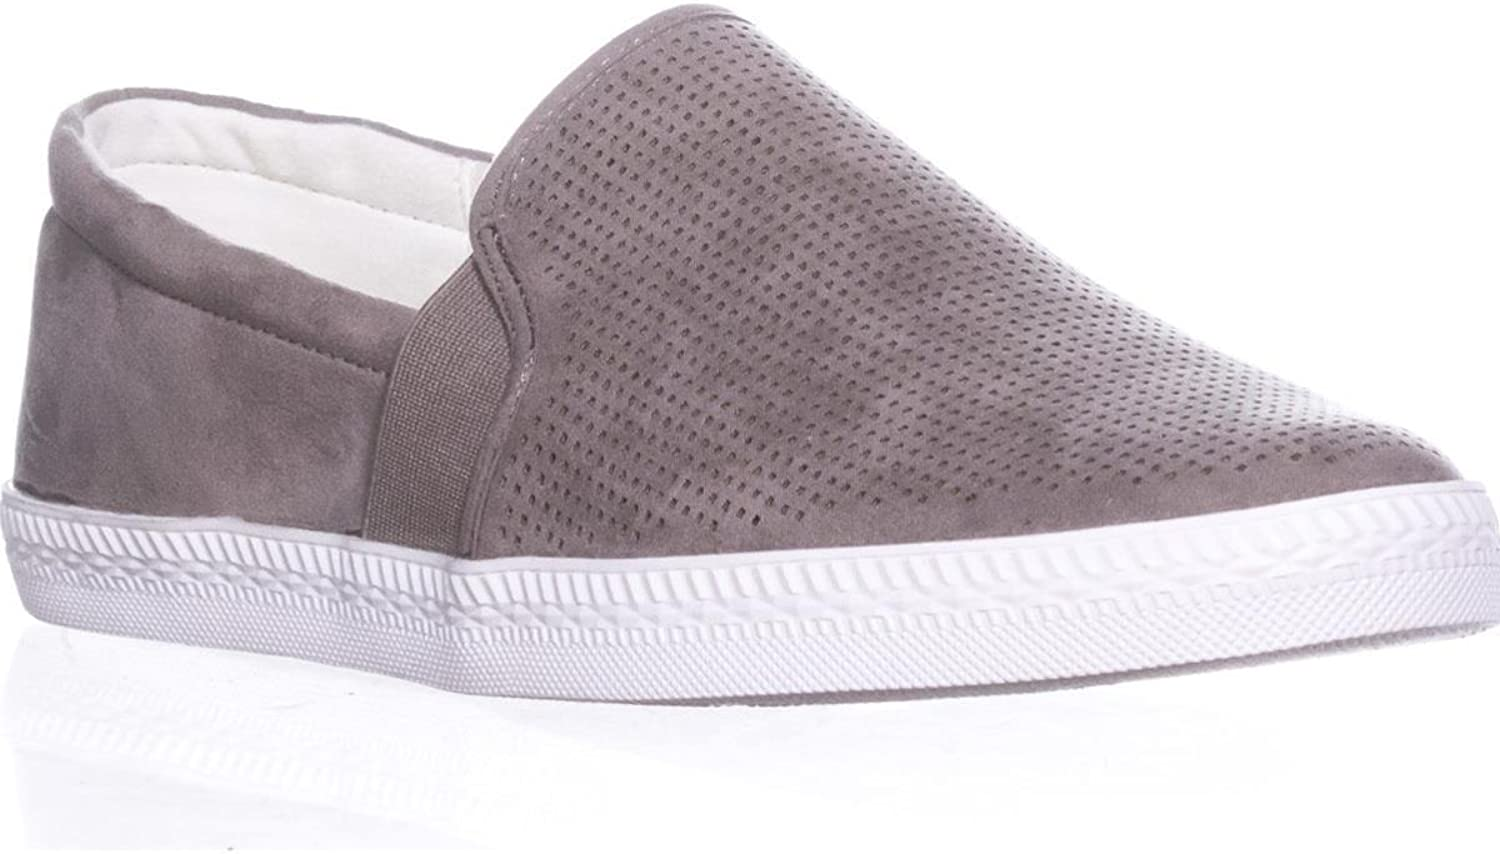 Sc35 Louiza Perforated Slip-On Sneakers, Light Grey